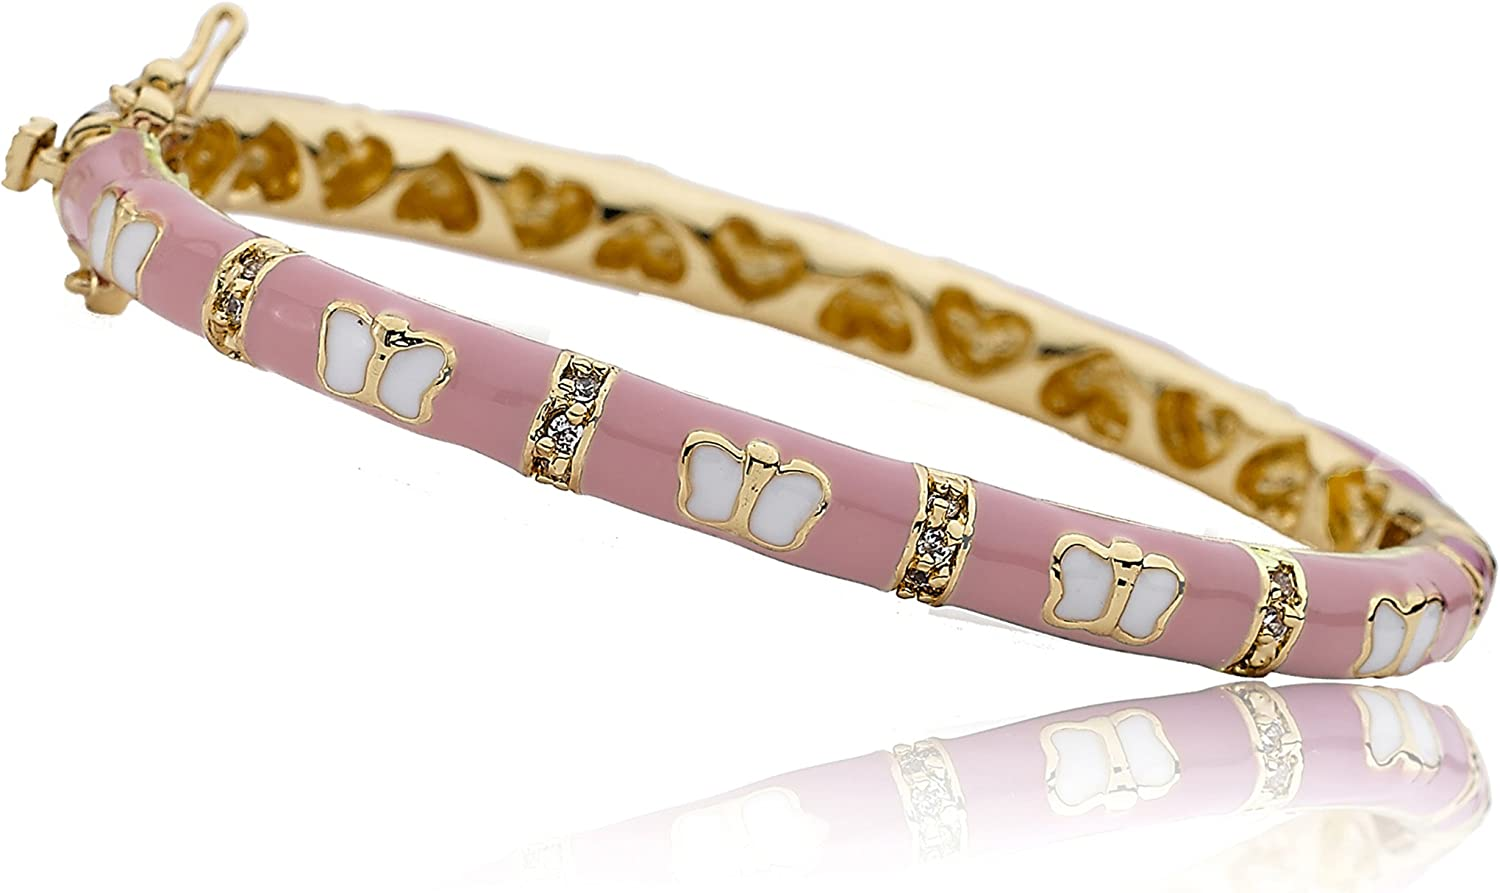 Little Miss Twin Stars Outfit Makers 14k Gold-Plated Hot Pink Enamel Bangle with Cubic Zirconia Lines /& White Butterflies// 35 mm